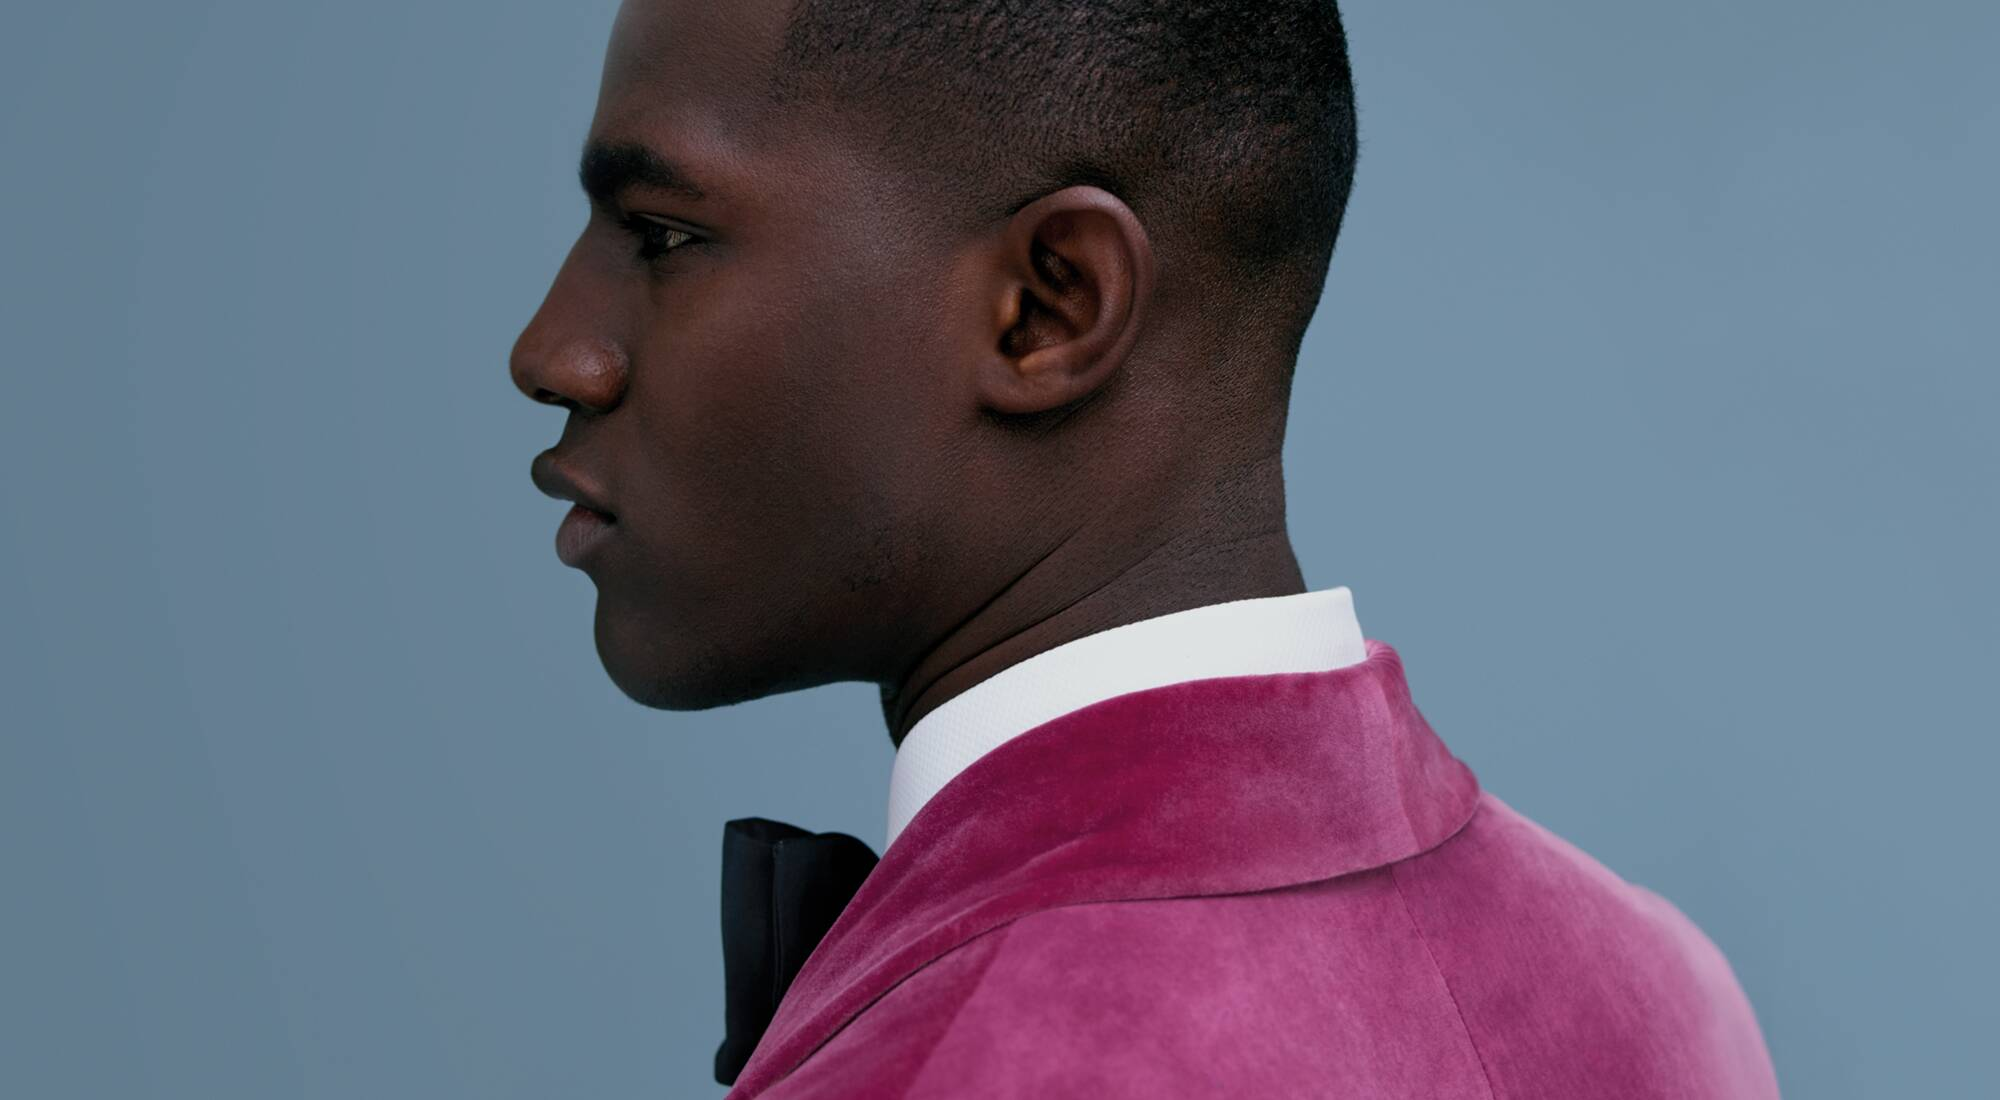 thomas pink becomes pink shirtmaker london  unveils new